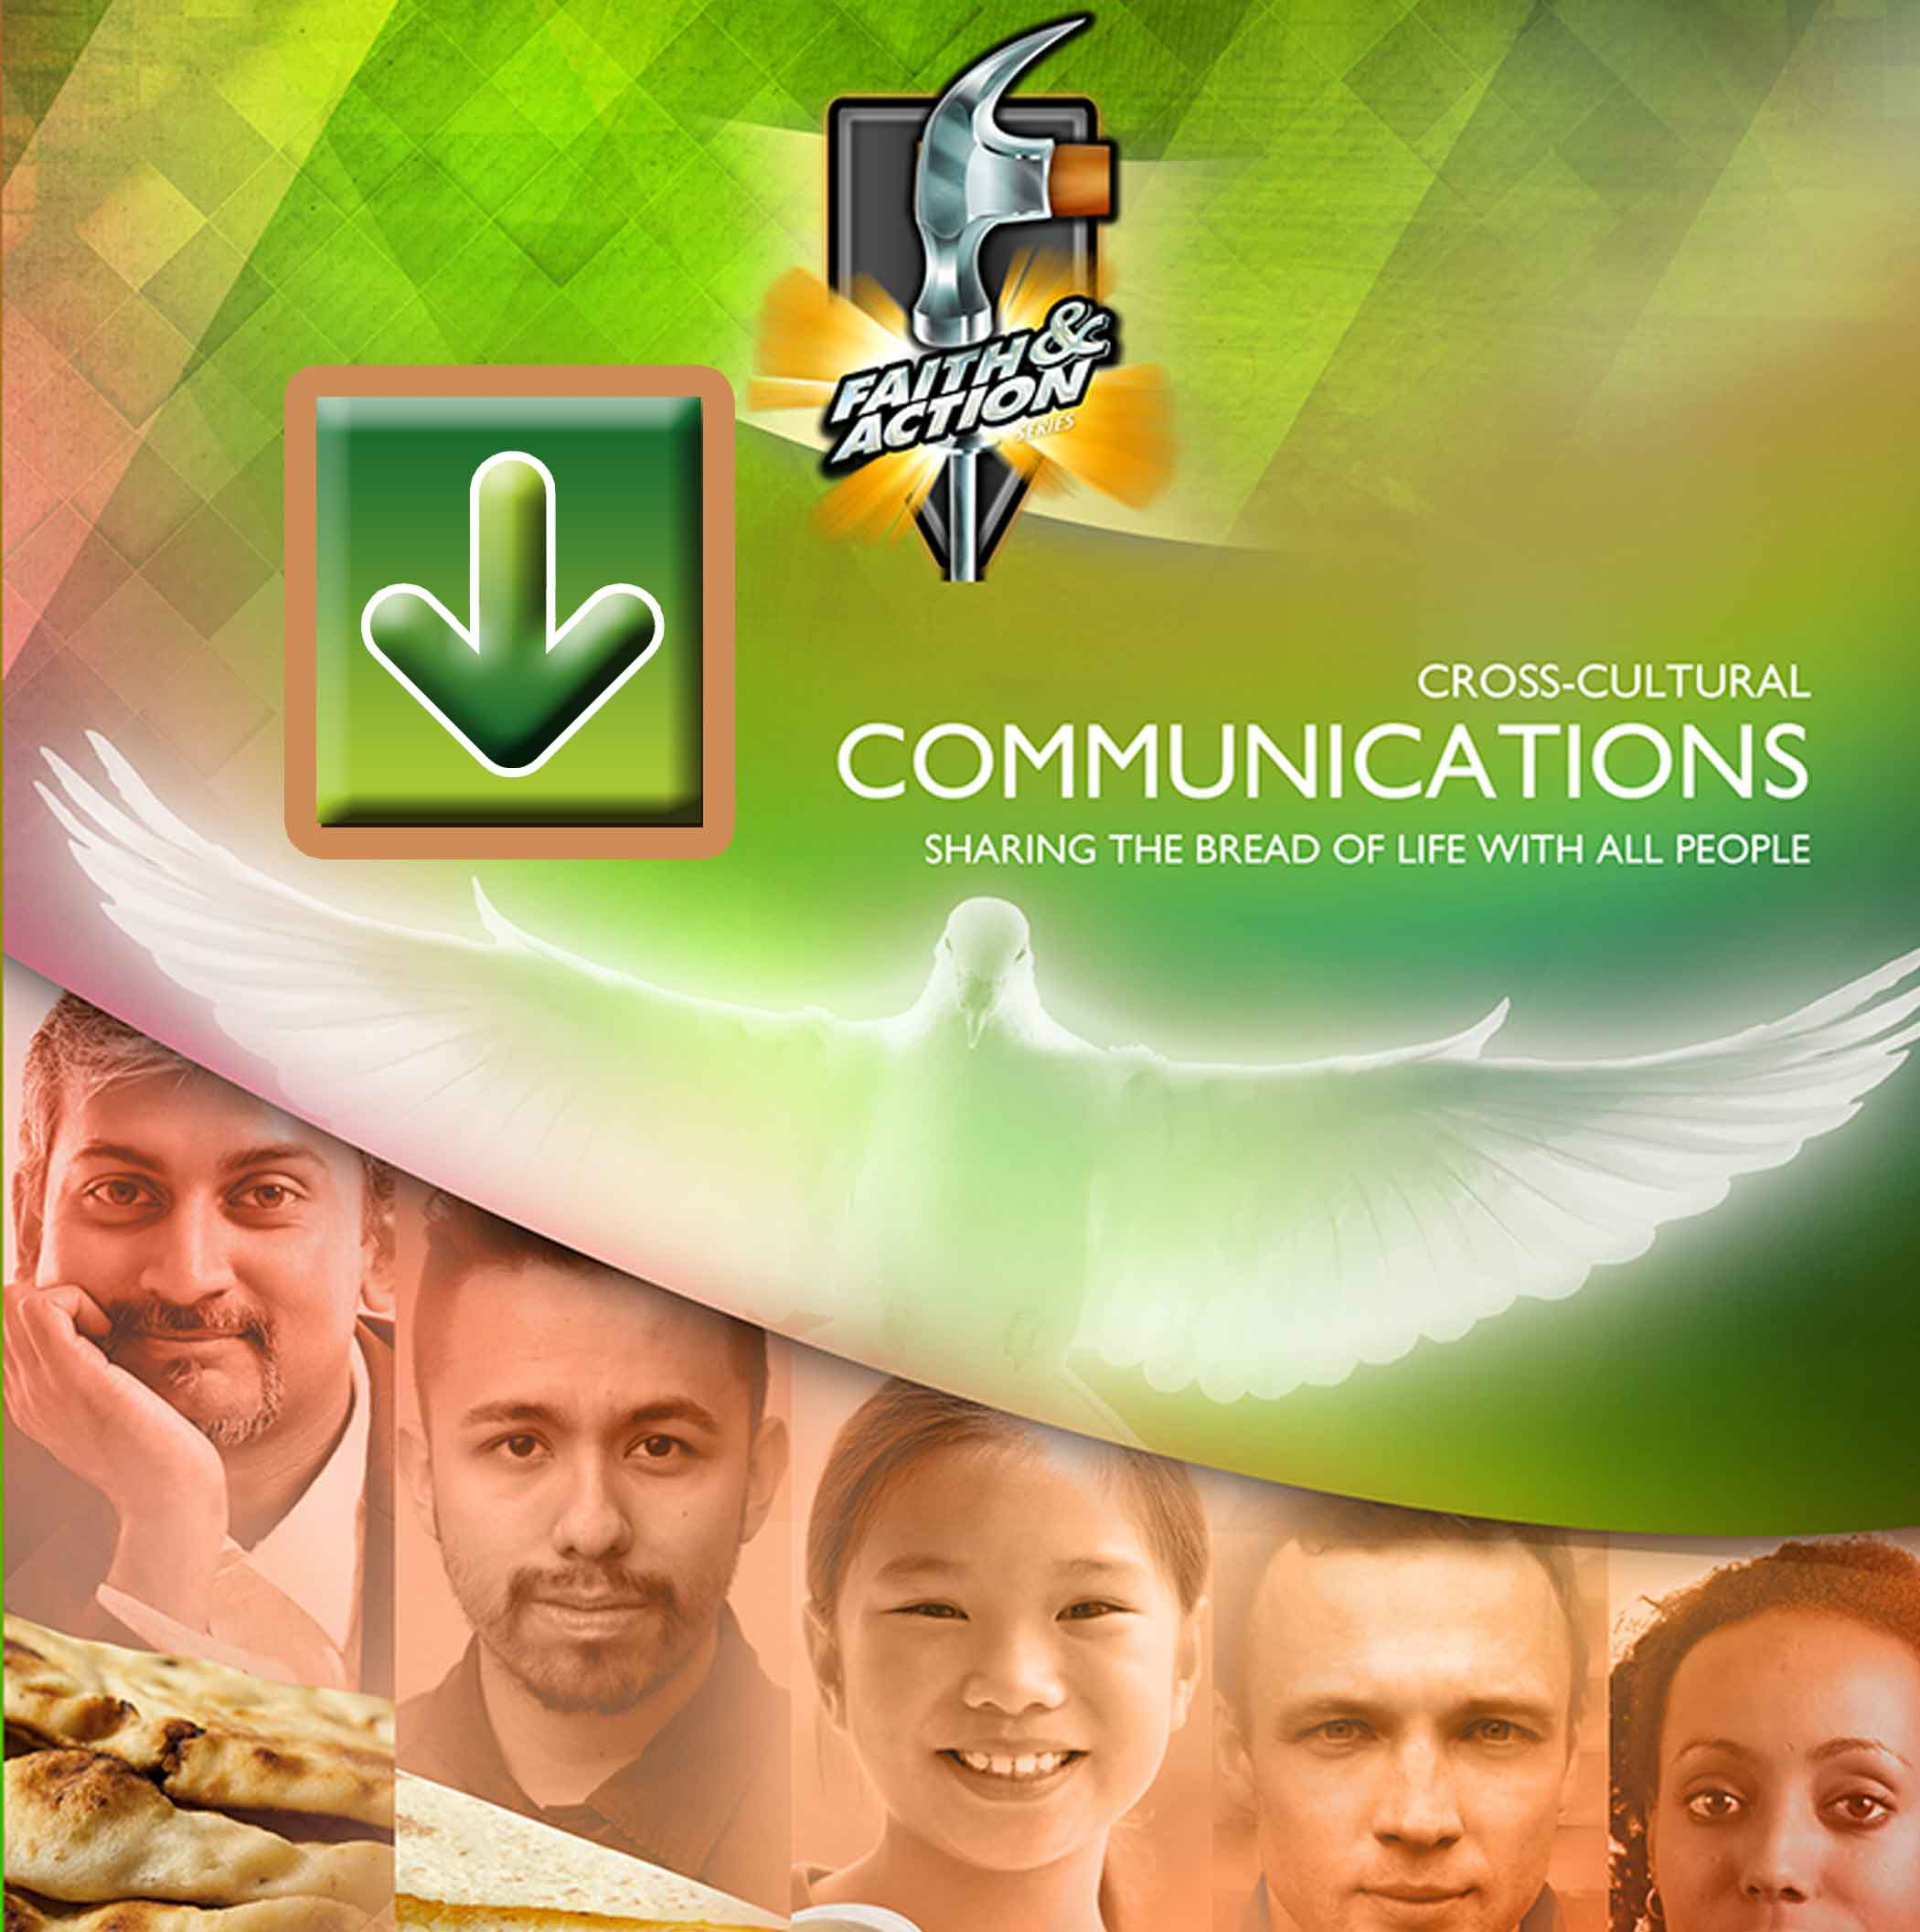 Cross-Cultural Communications—Sharing the Bread of Life With All People: Missions 2 - eVisuals Zipped Download - 4441-31EX